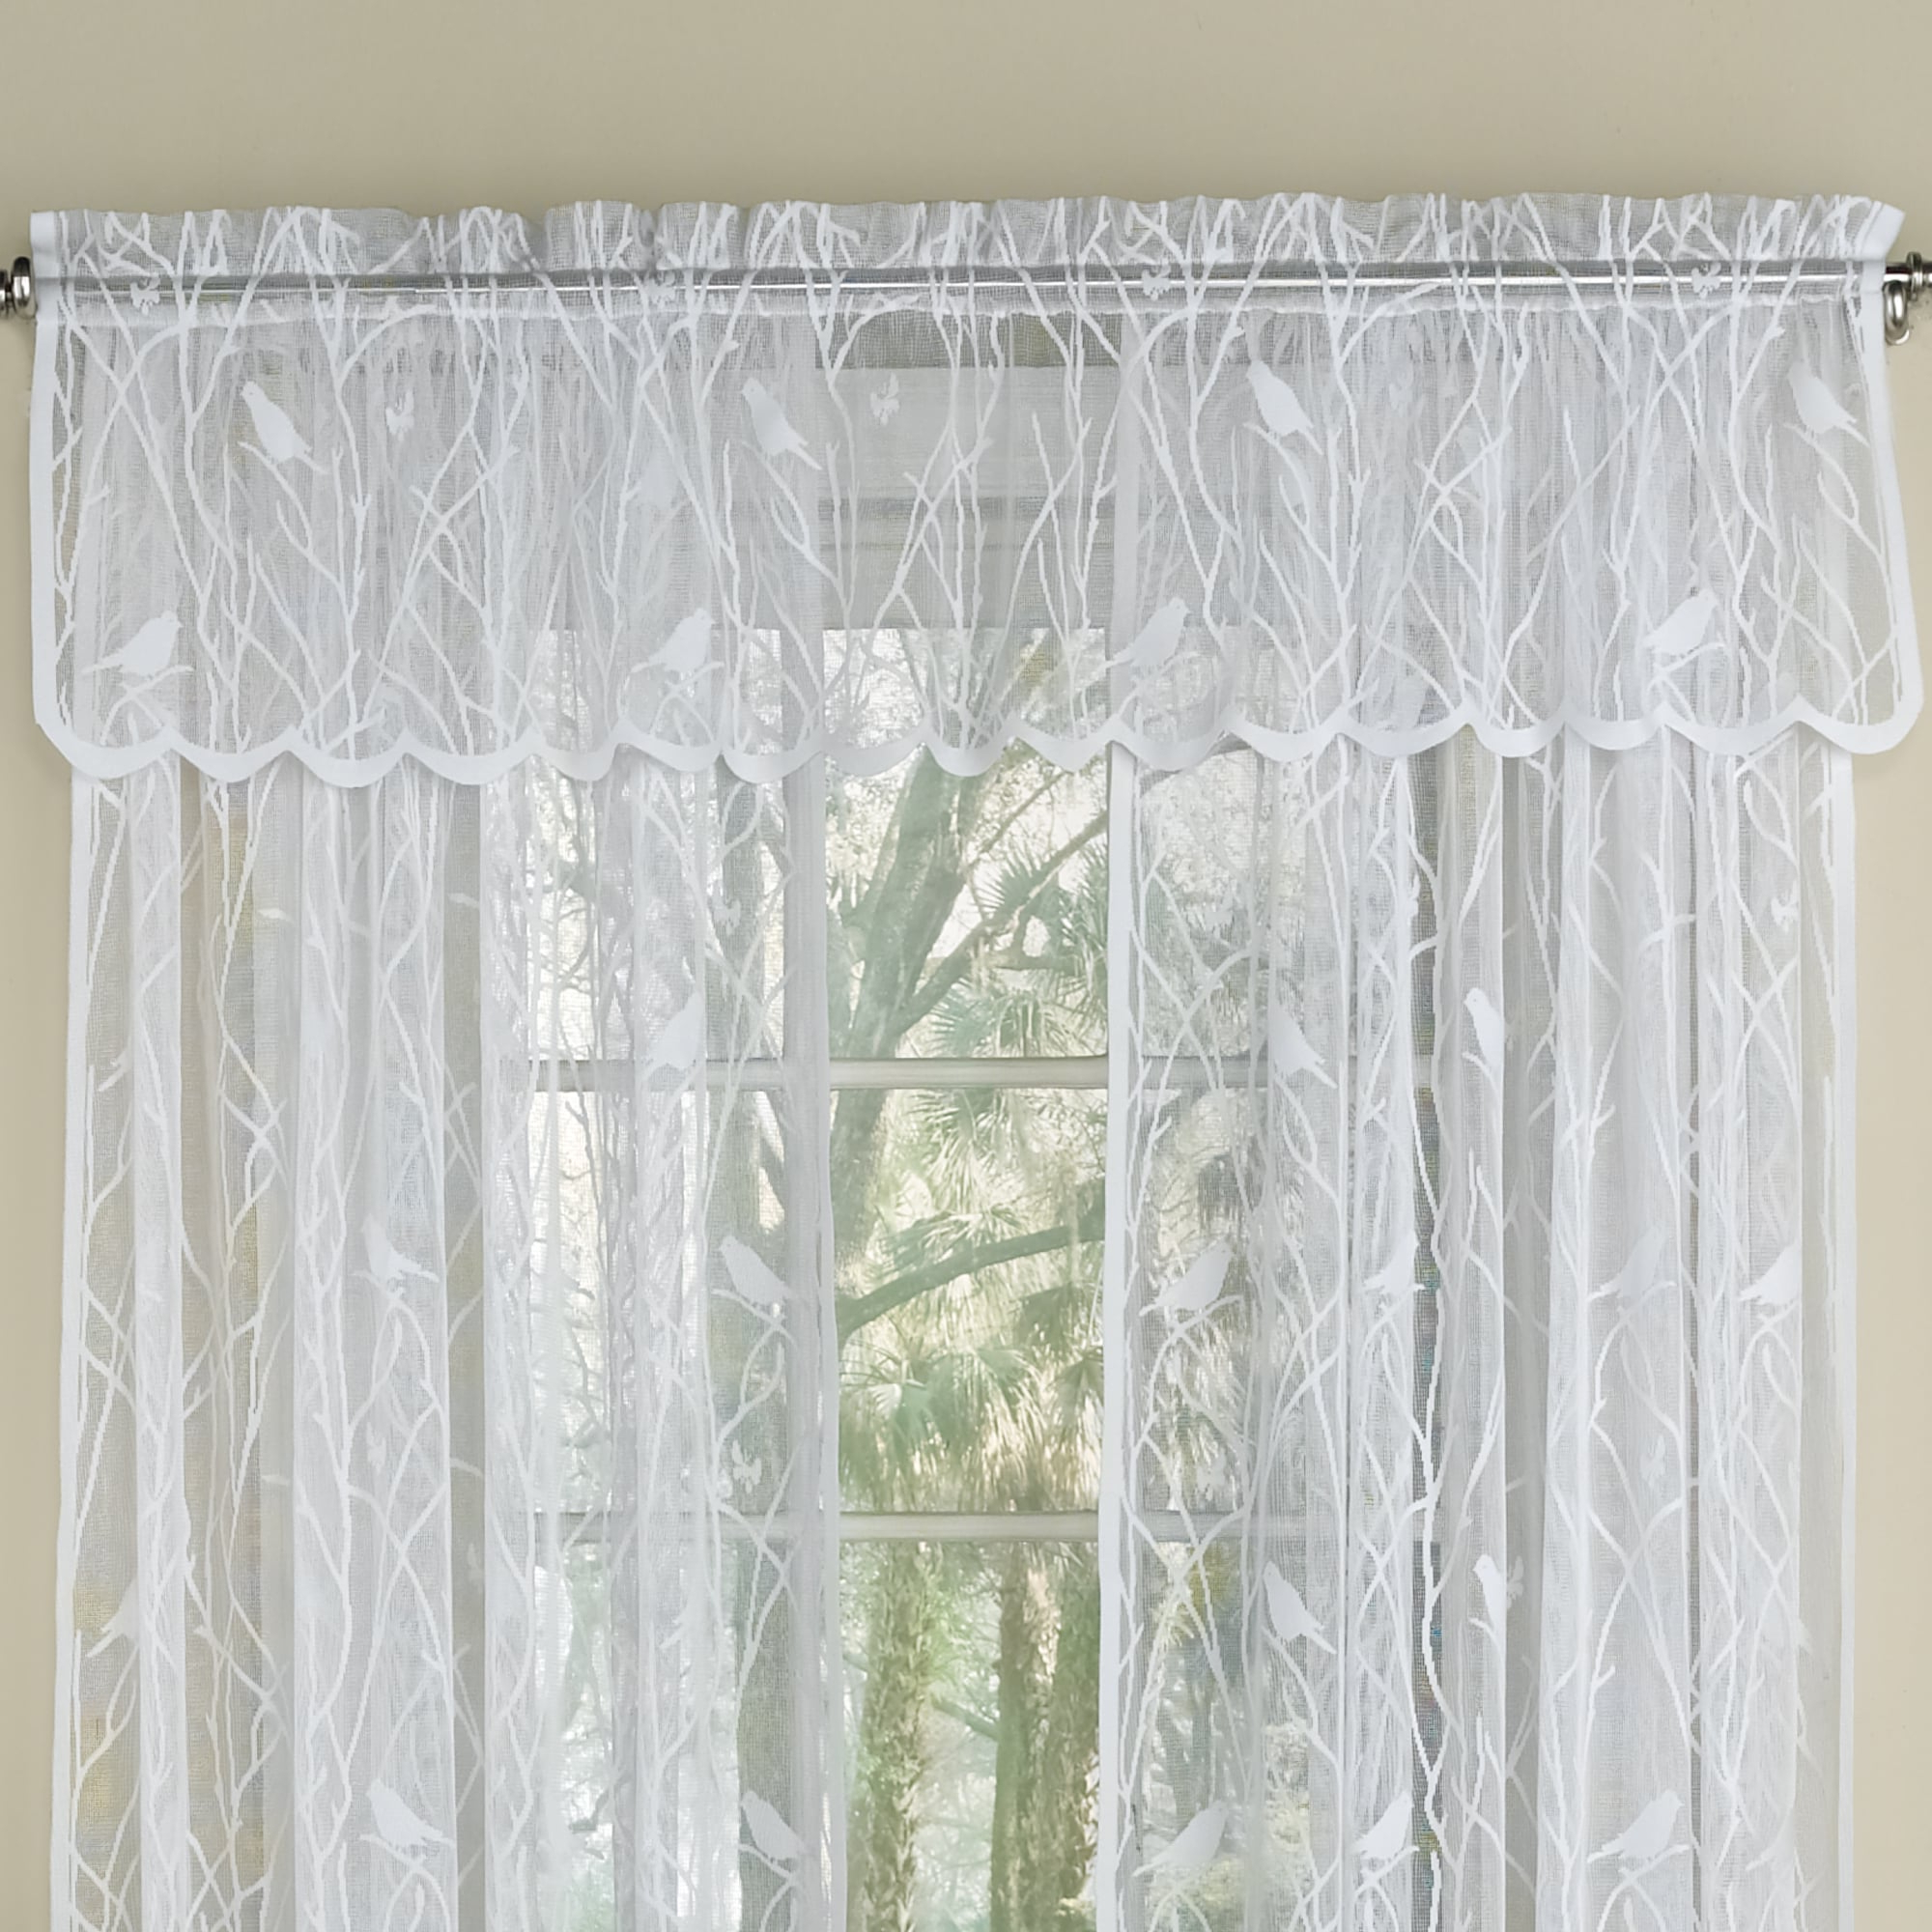 Current White Knit Lace Bird Motif Window Curtain Tiers For Sweet Home Collection White Knit Lace Bird Motif Window Curtain Tiers, Valance And Swag Pair Options (View 3 of 20)